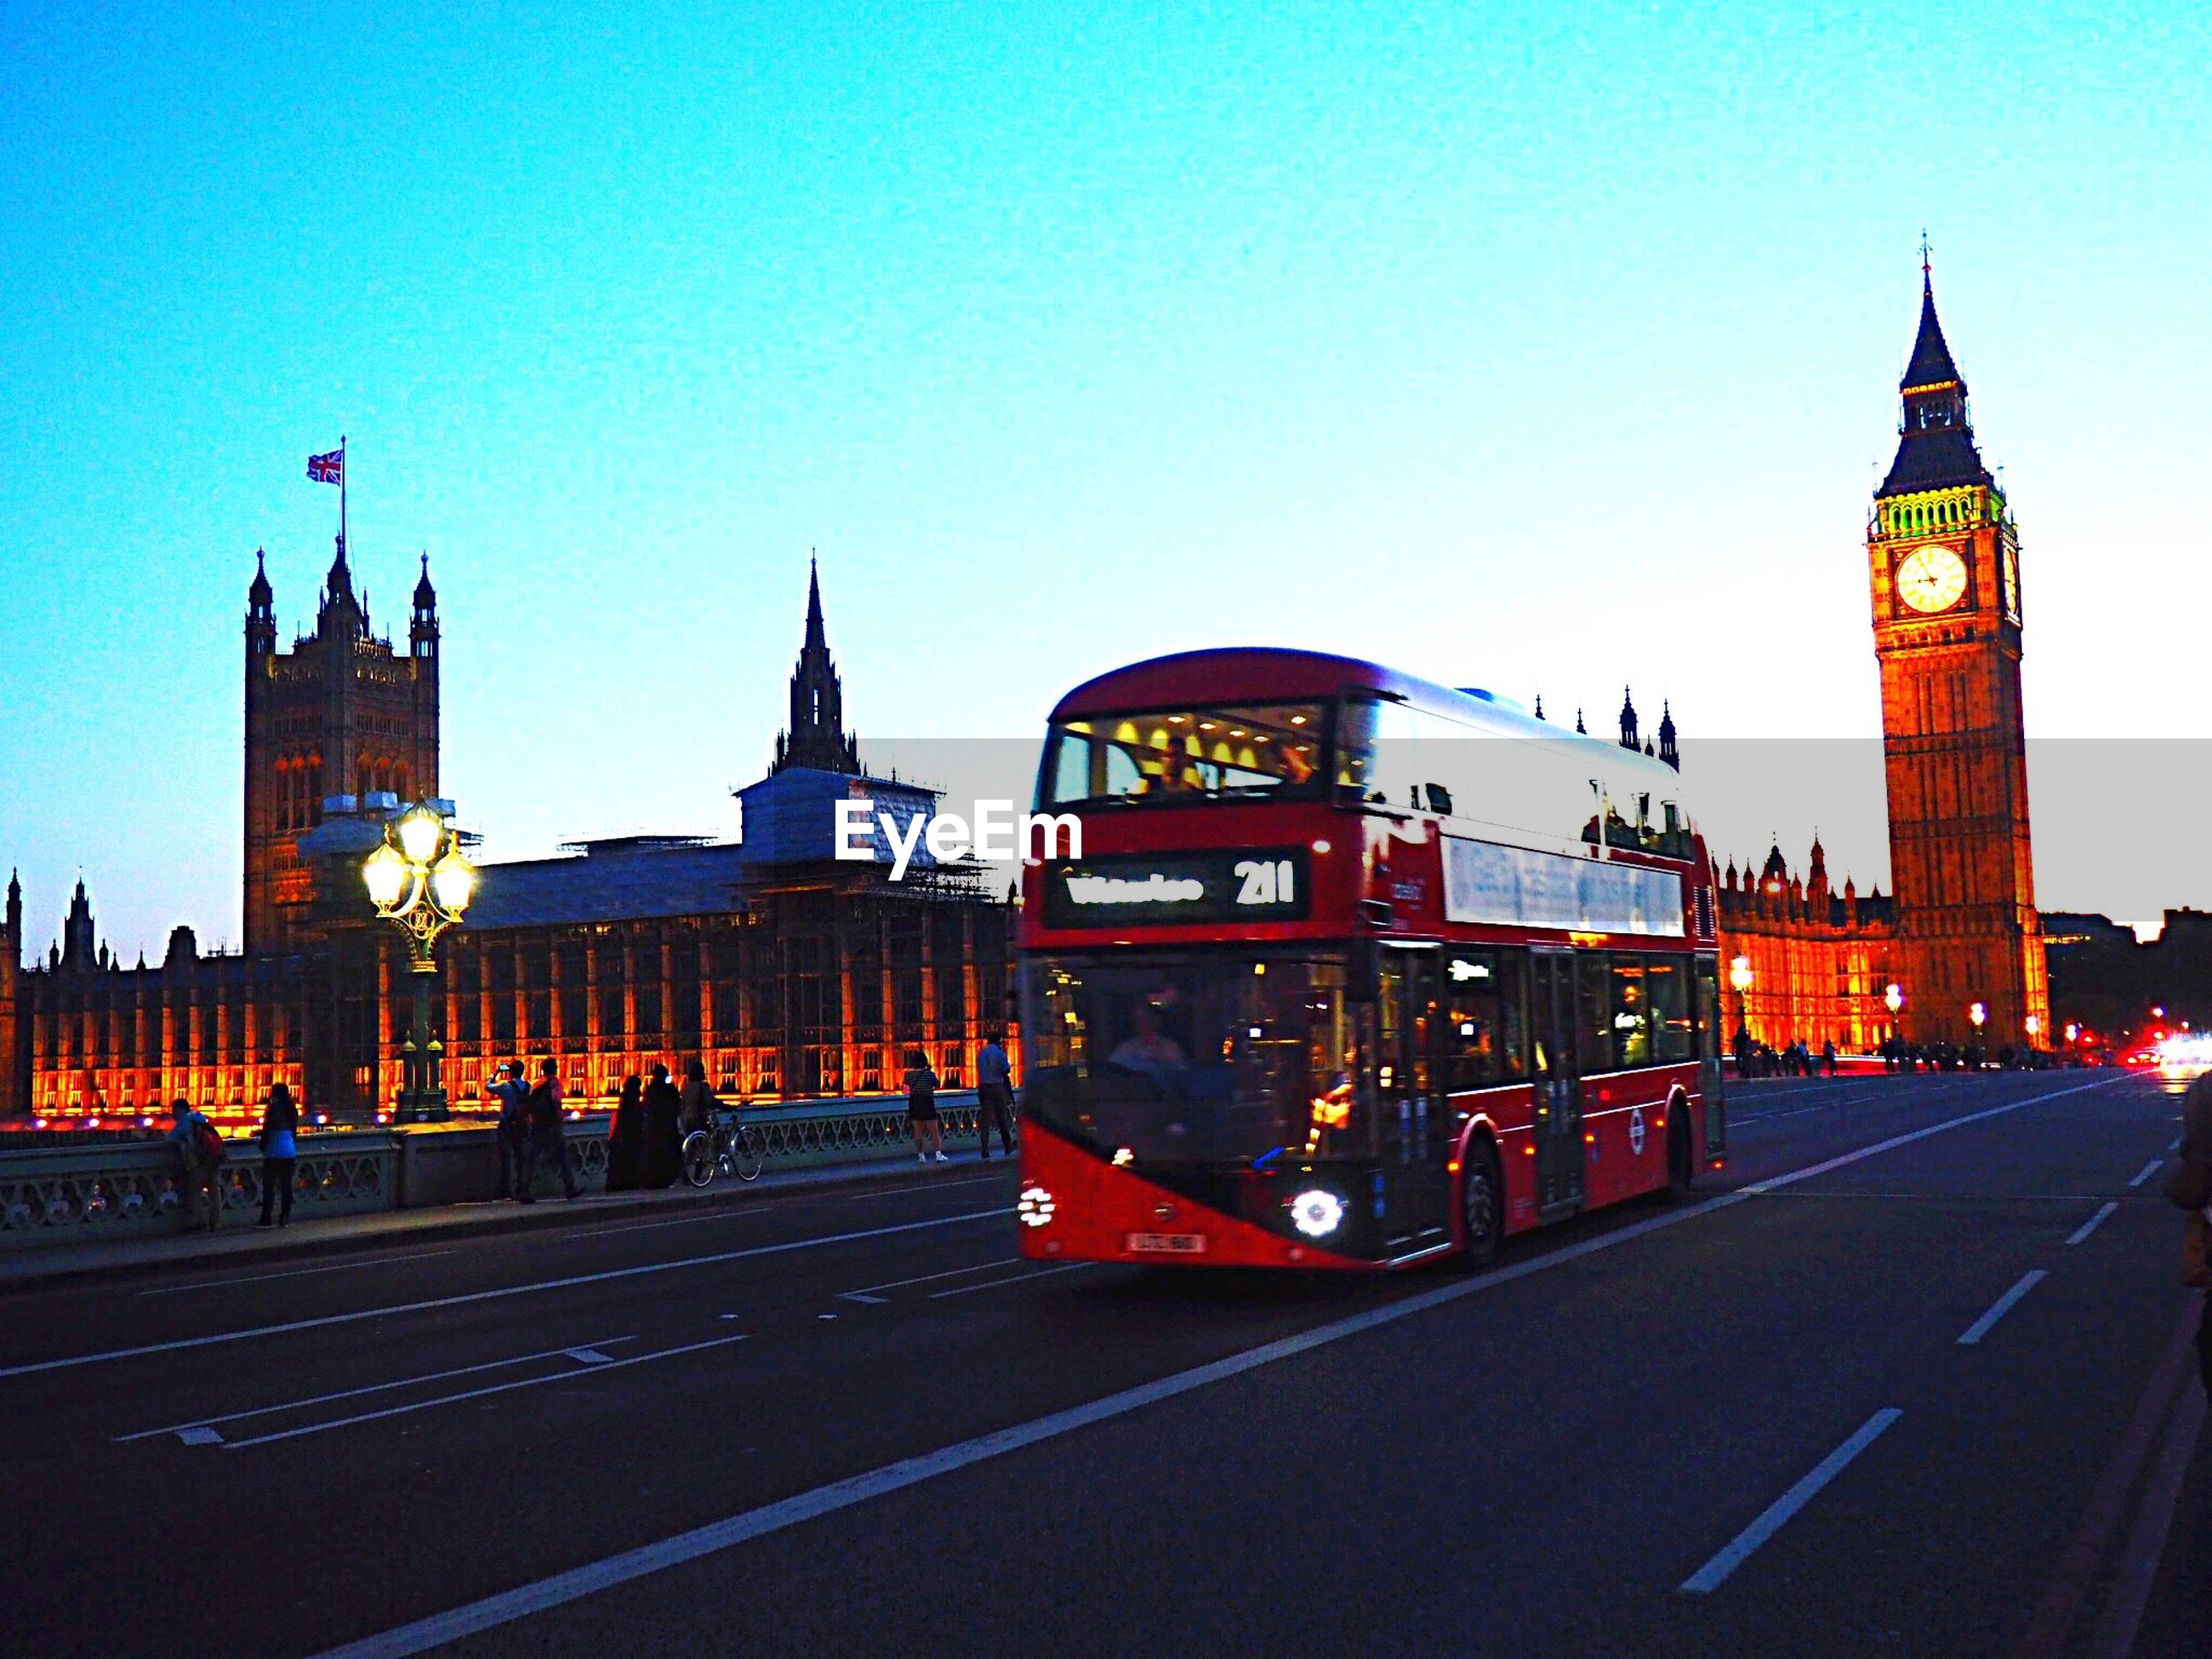 architecture, building exterior, built structure, travel destinations, transportation, tourism, famous place, road, city, travel, clear sky, clock tower, street, city life, big ben, houses of parliament, blue, tower, history, capital cities, illuminated, outdoors, international landmark, tall - high, parliament building, culture, sky, england, government